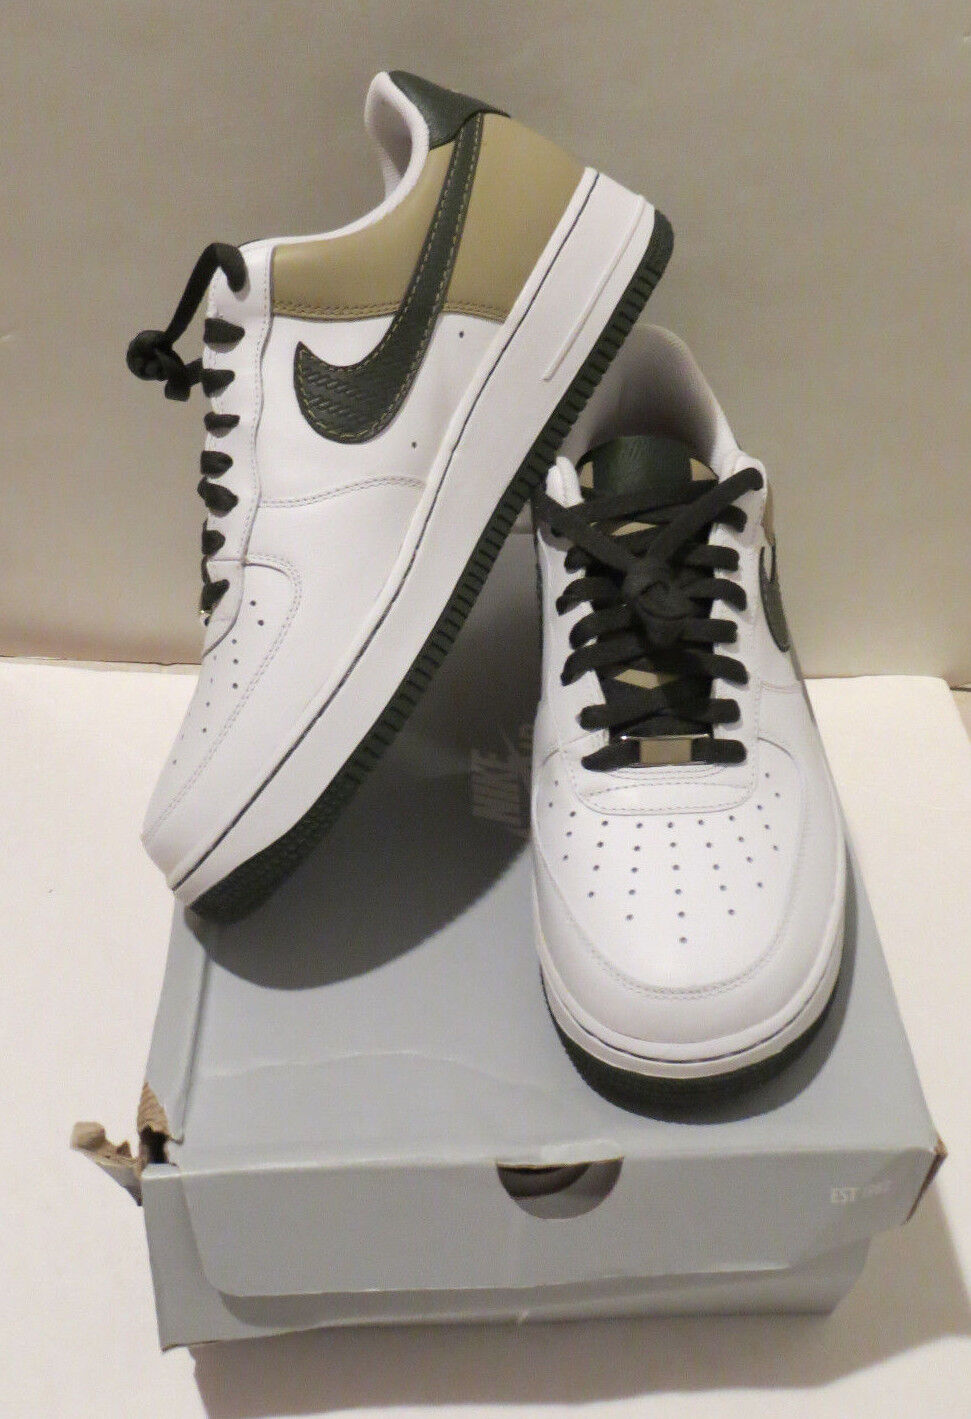 MENS NEW IN BOX NIKE AIR FORCE 1 '07 WHITE/DARK ARMY/TWEED SIZE 10.5